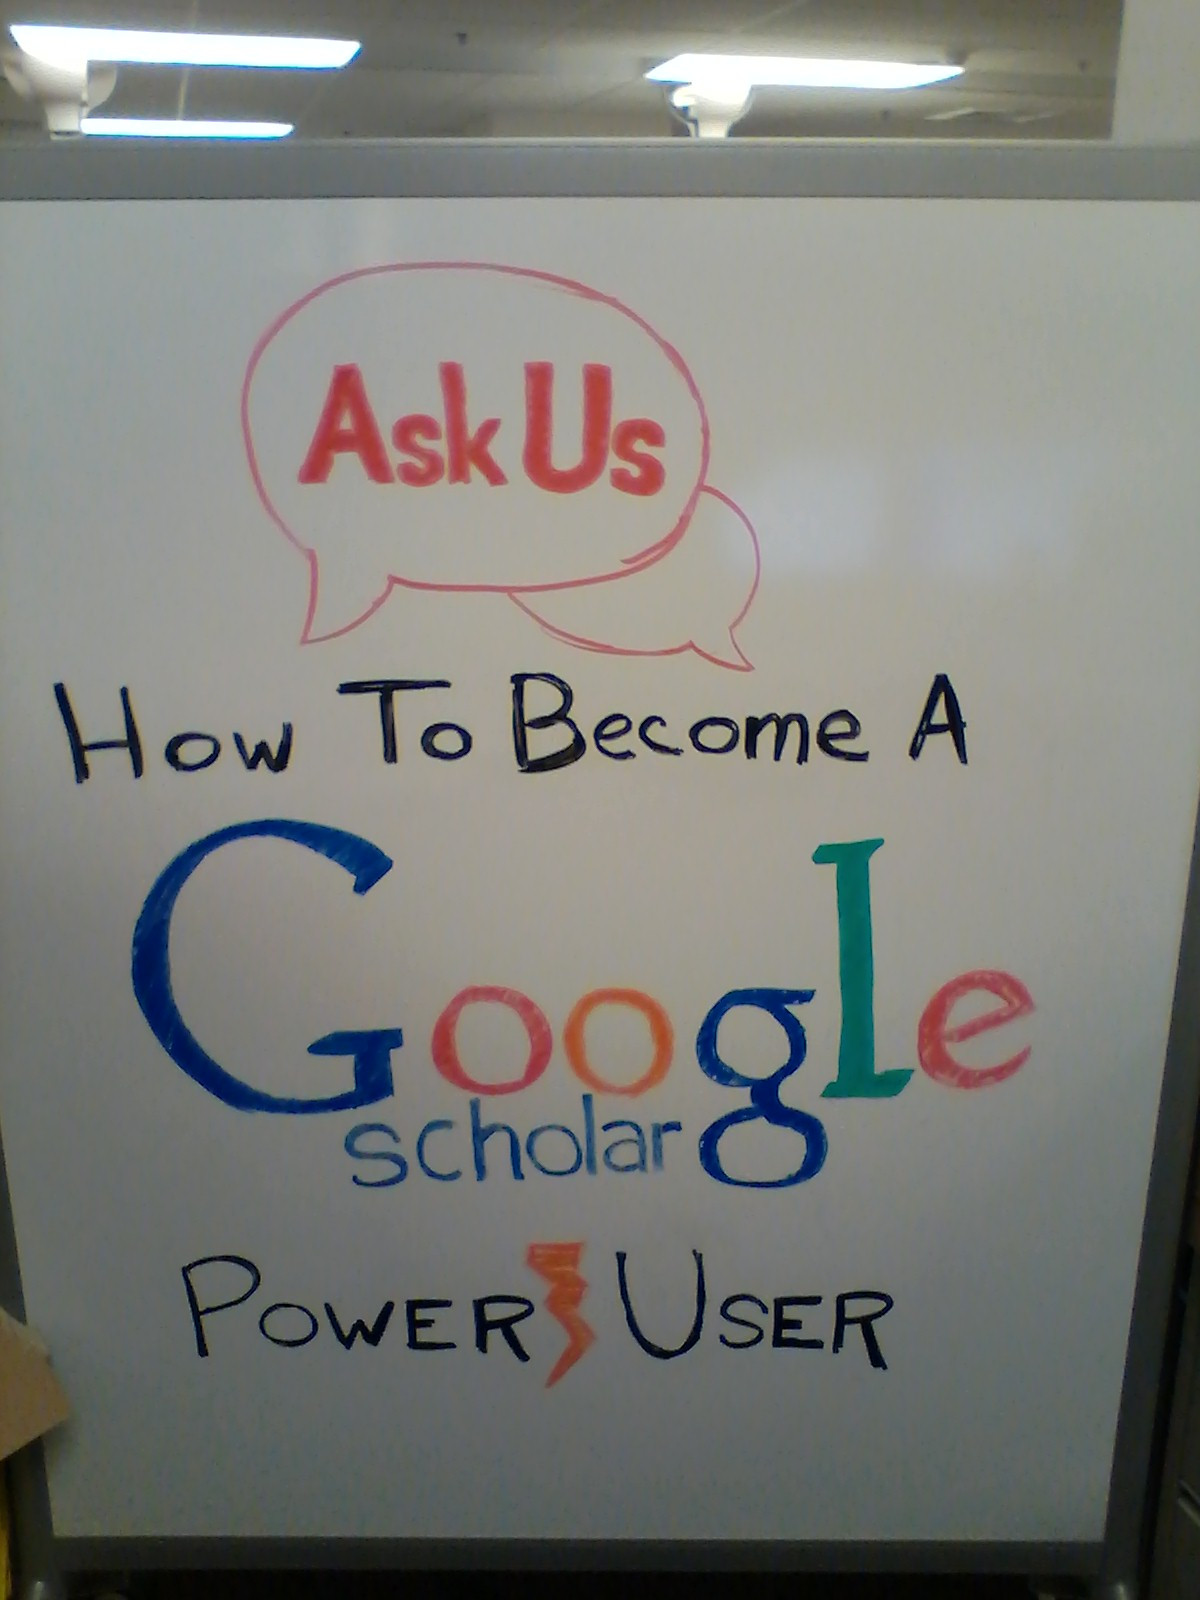 How to Become a Google Scholar Power User sign